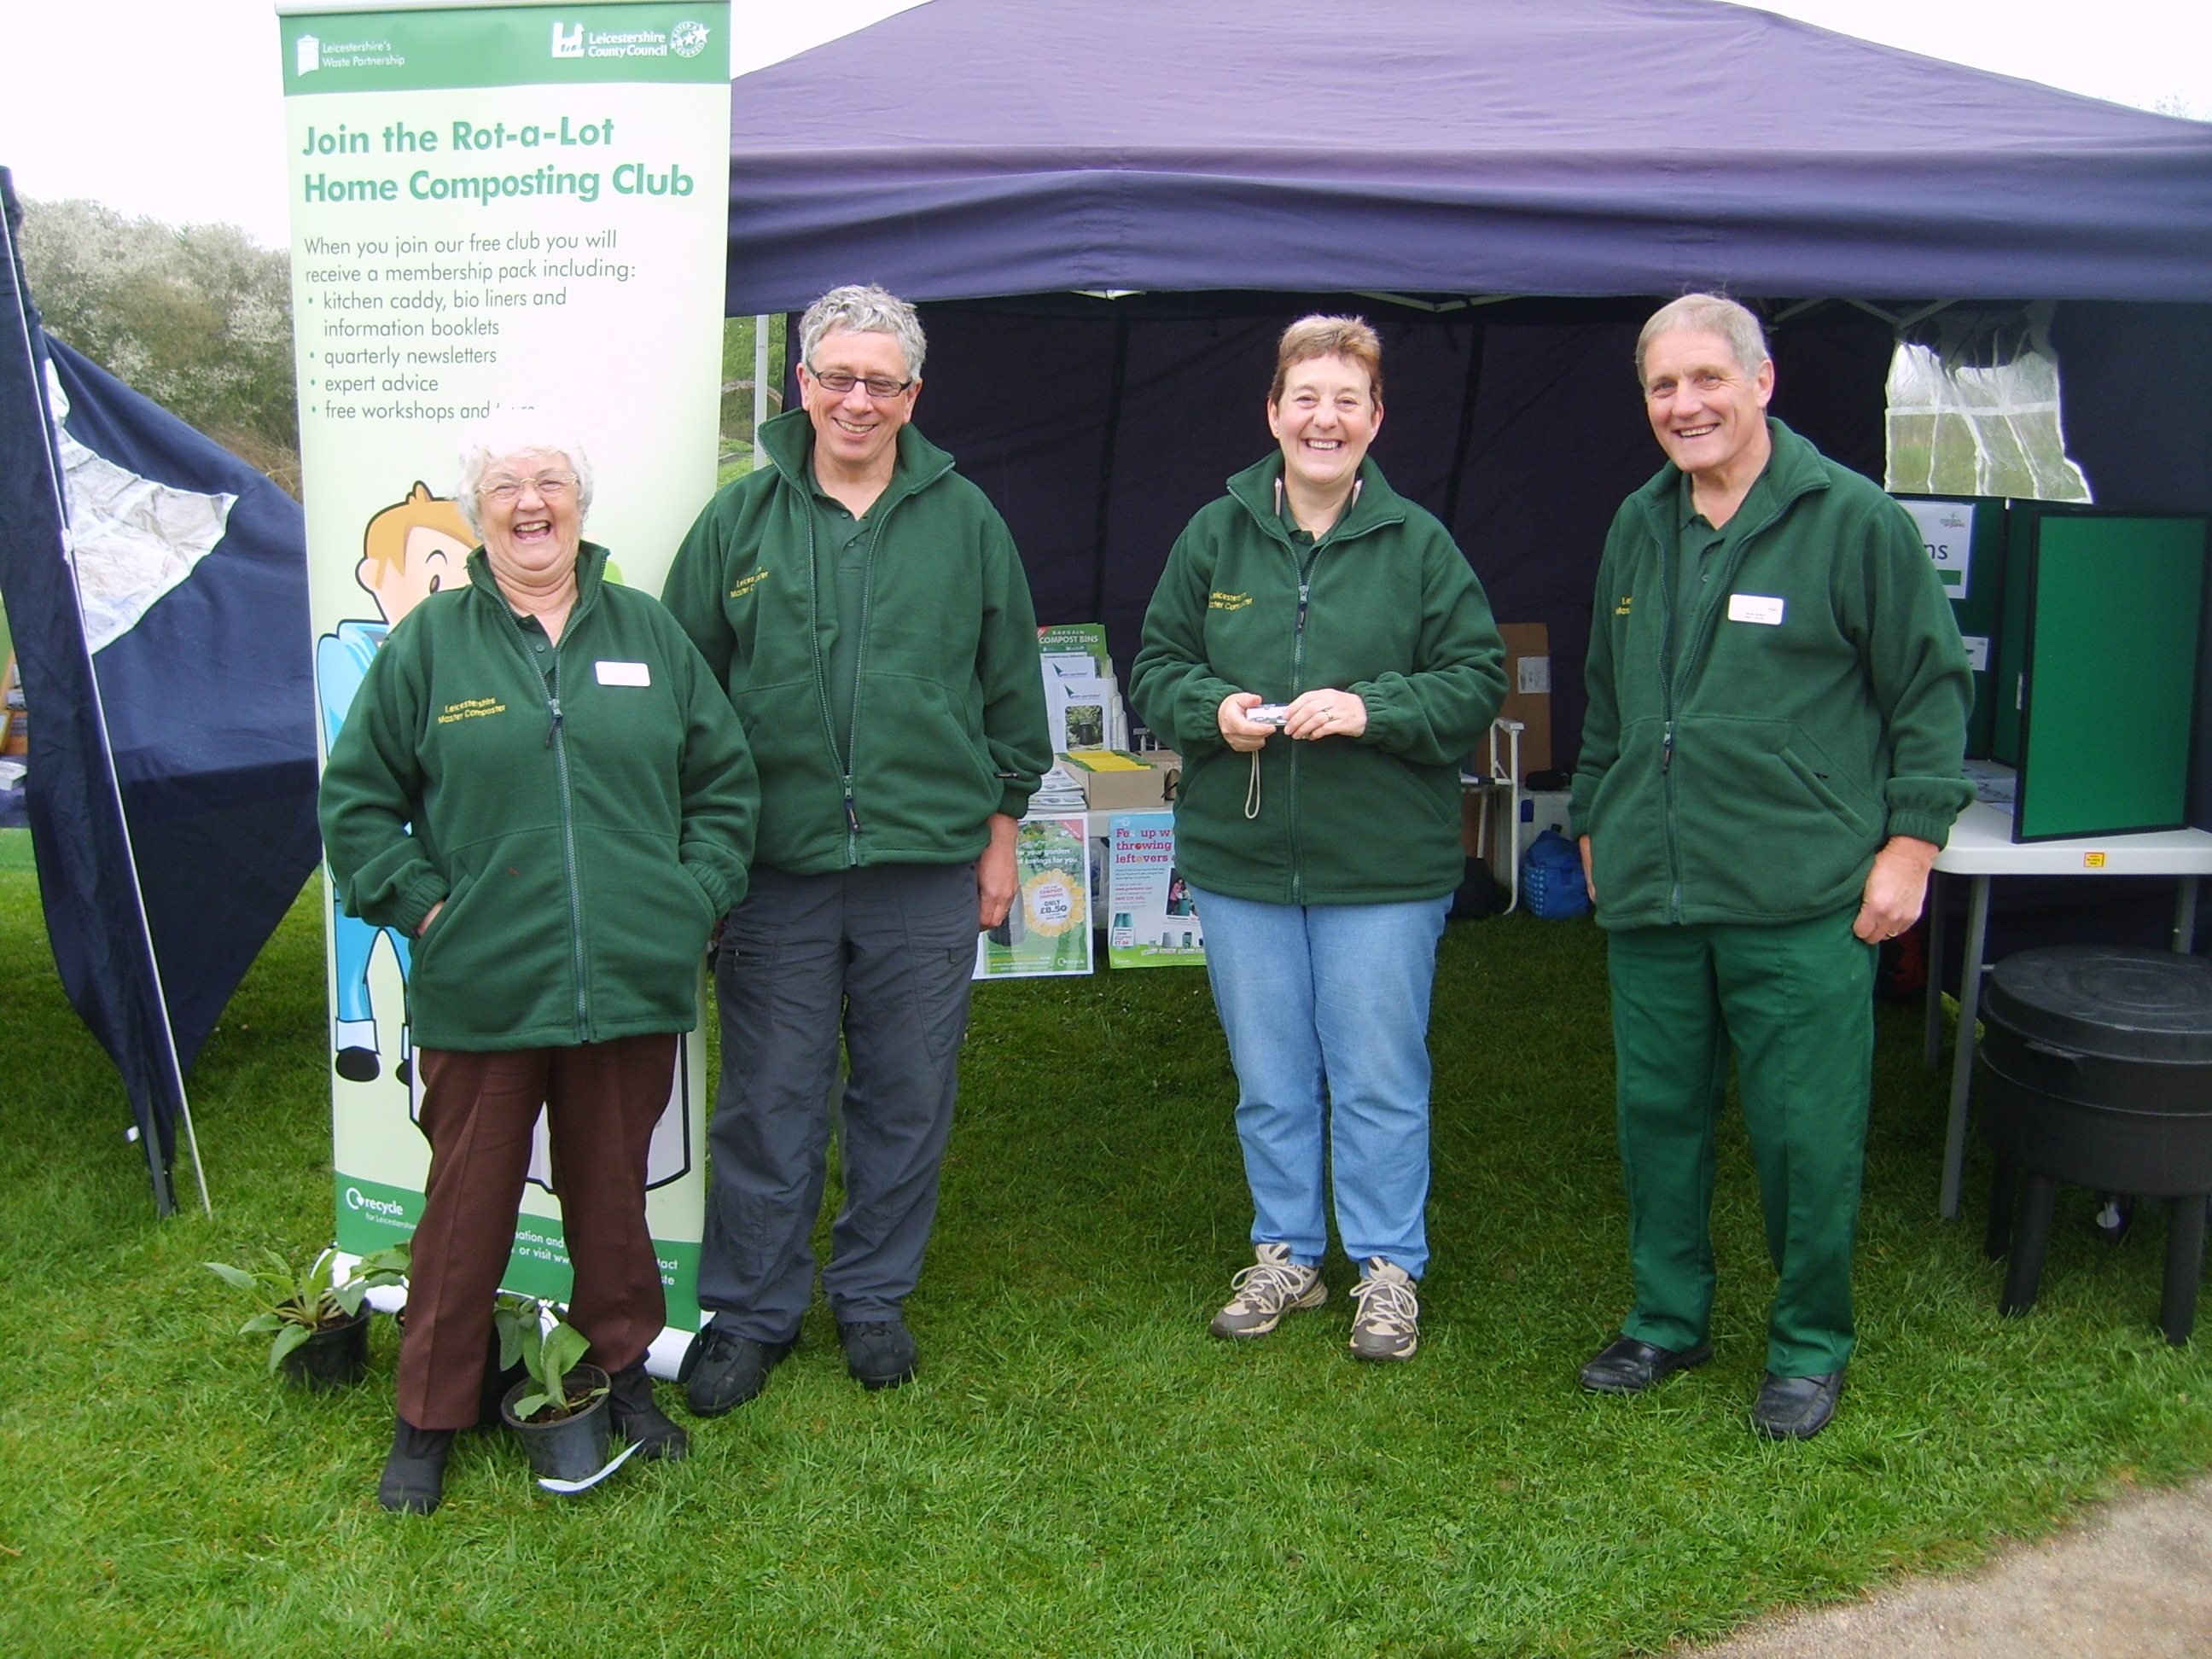 Volunteers at an event with a stall